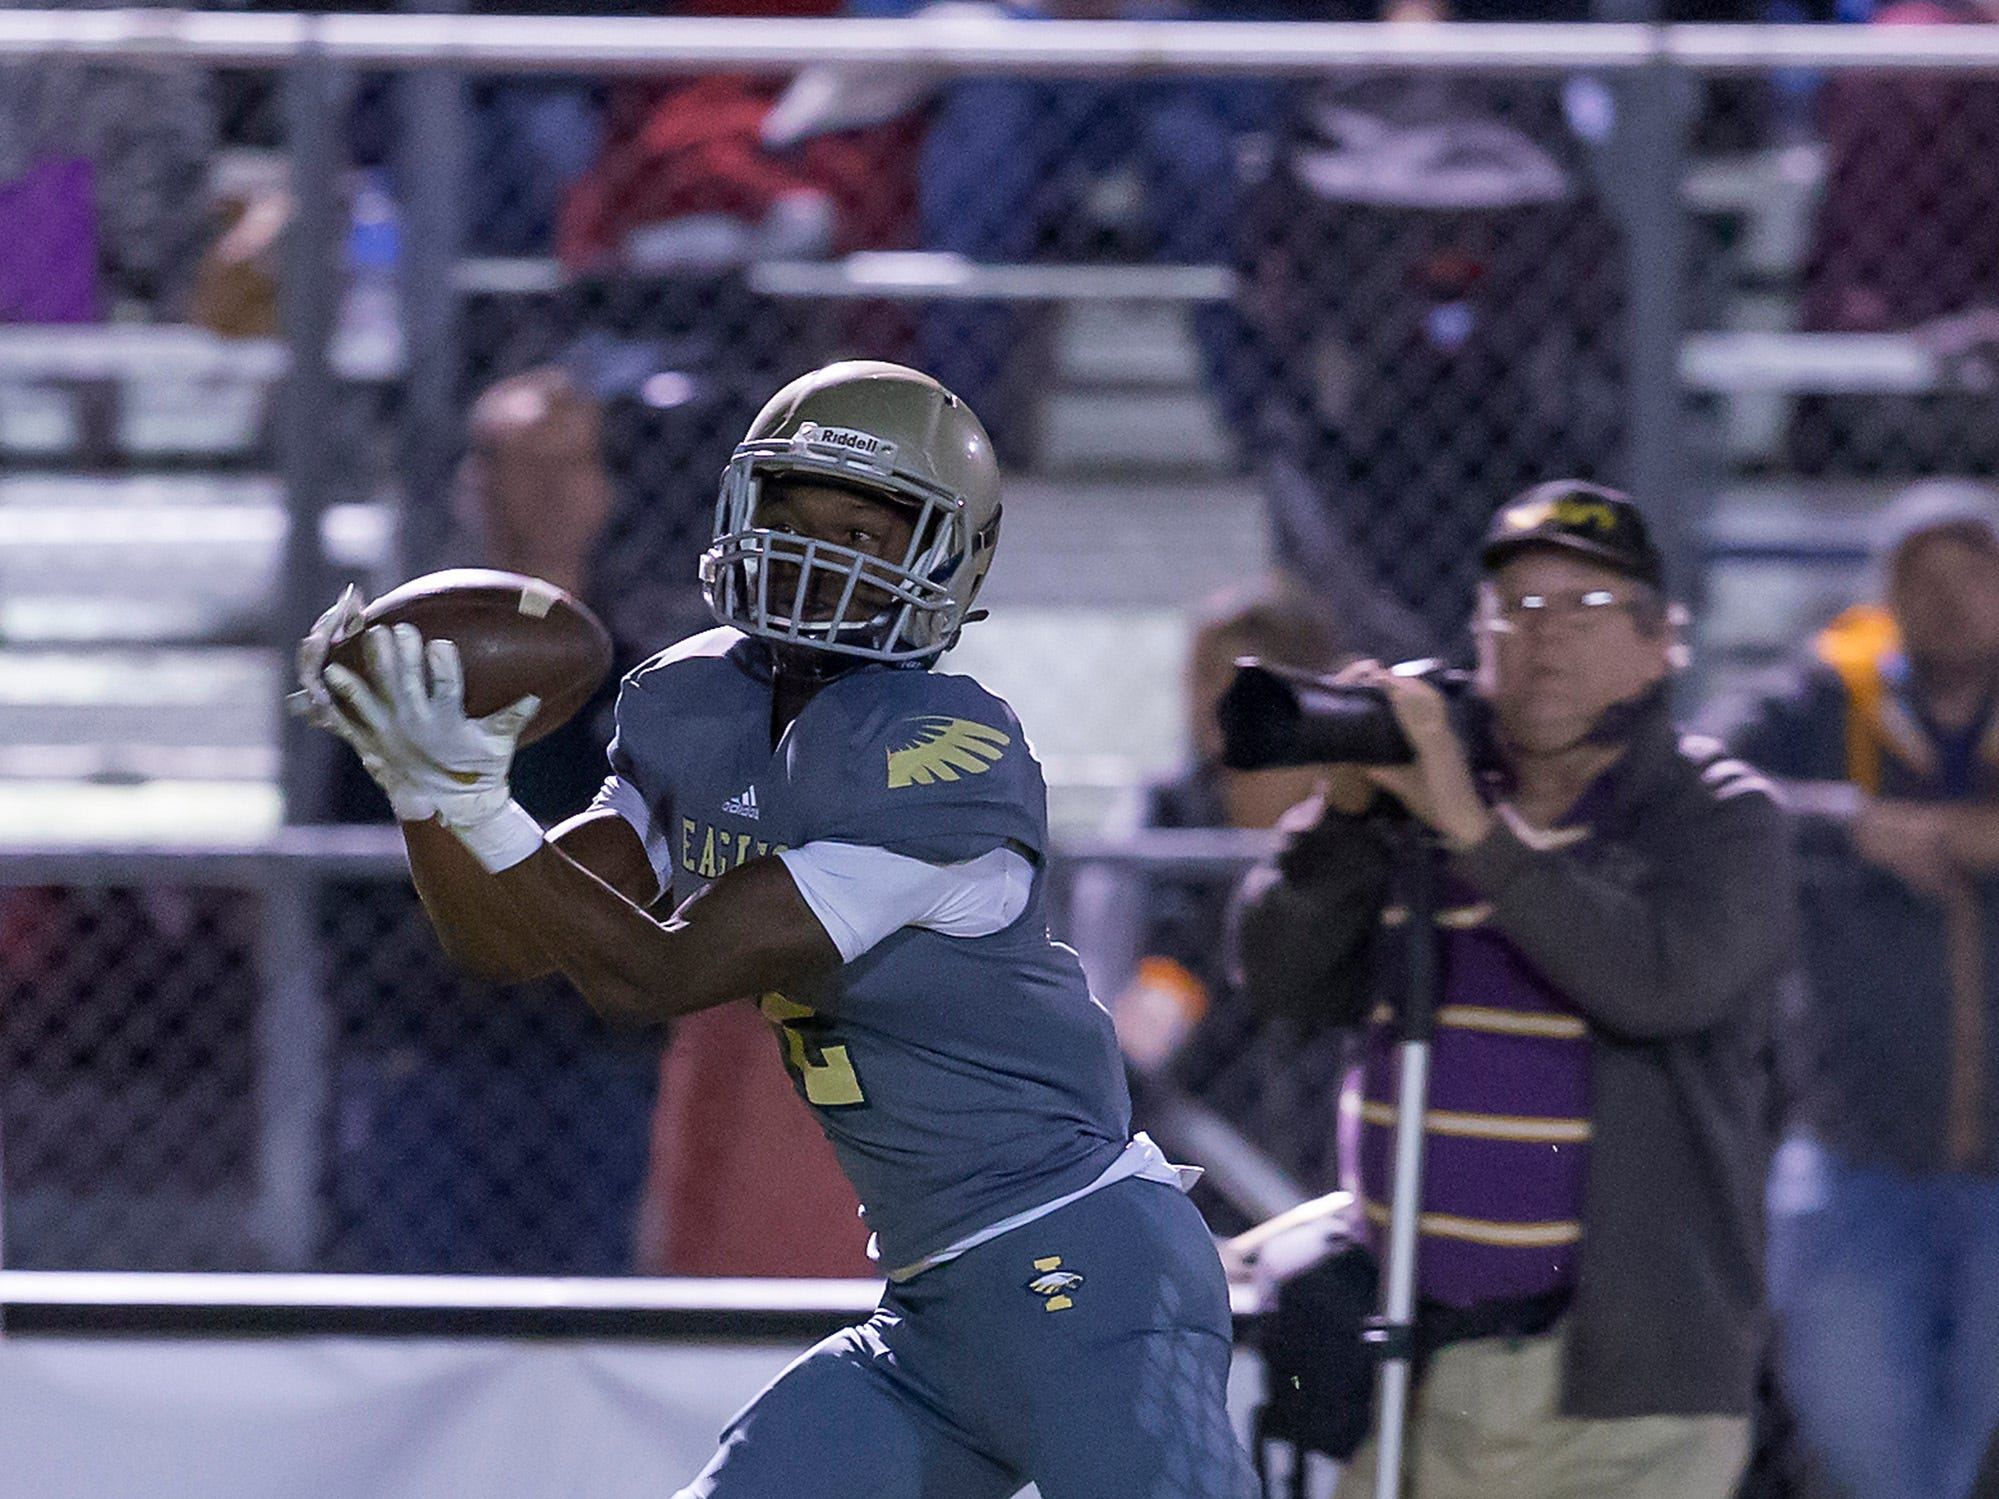 Independence's TJ Sheffield makes a catch and run for a touchdown against Dickson County.